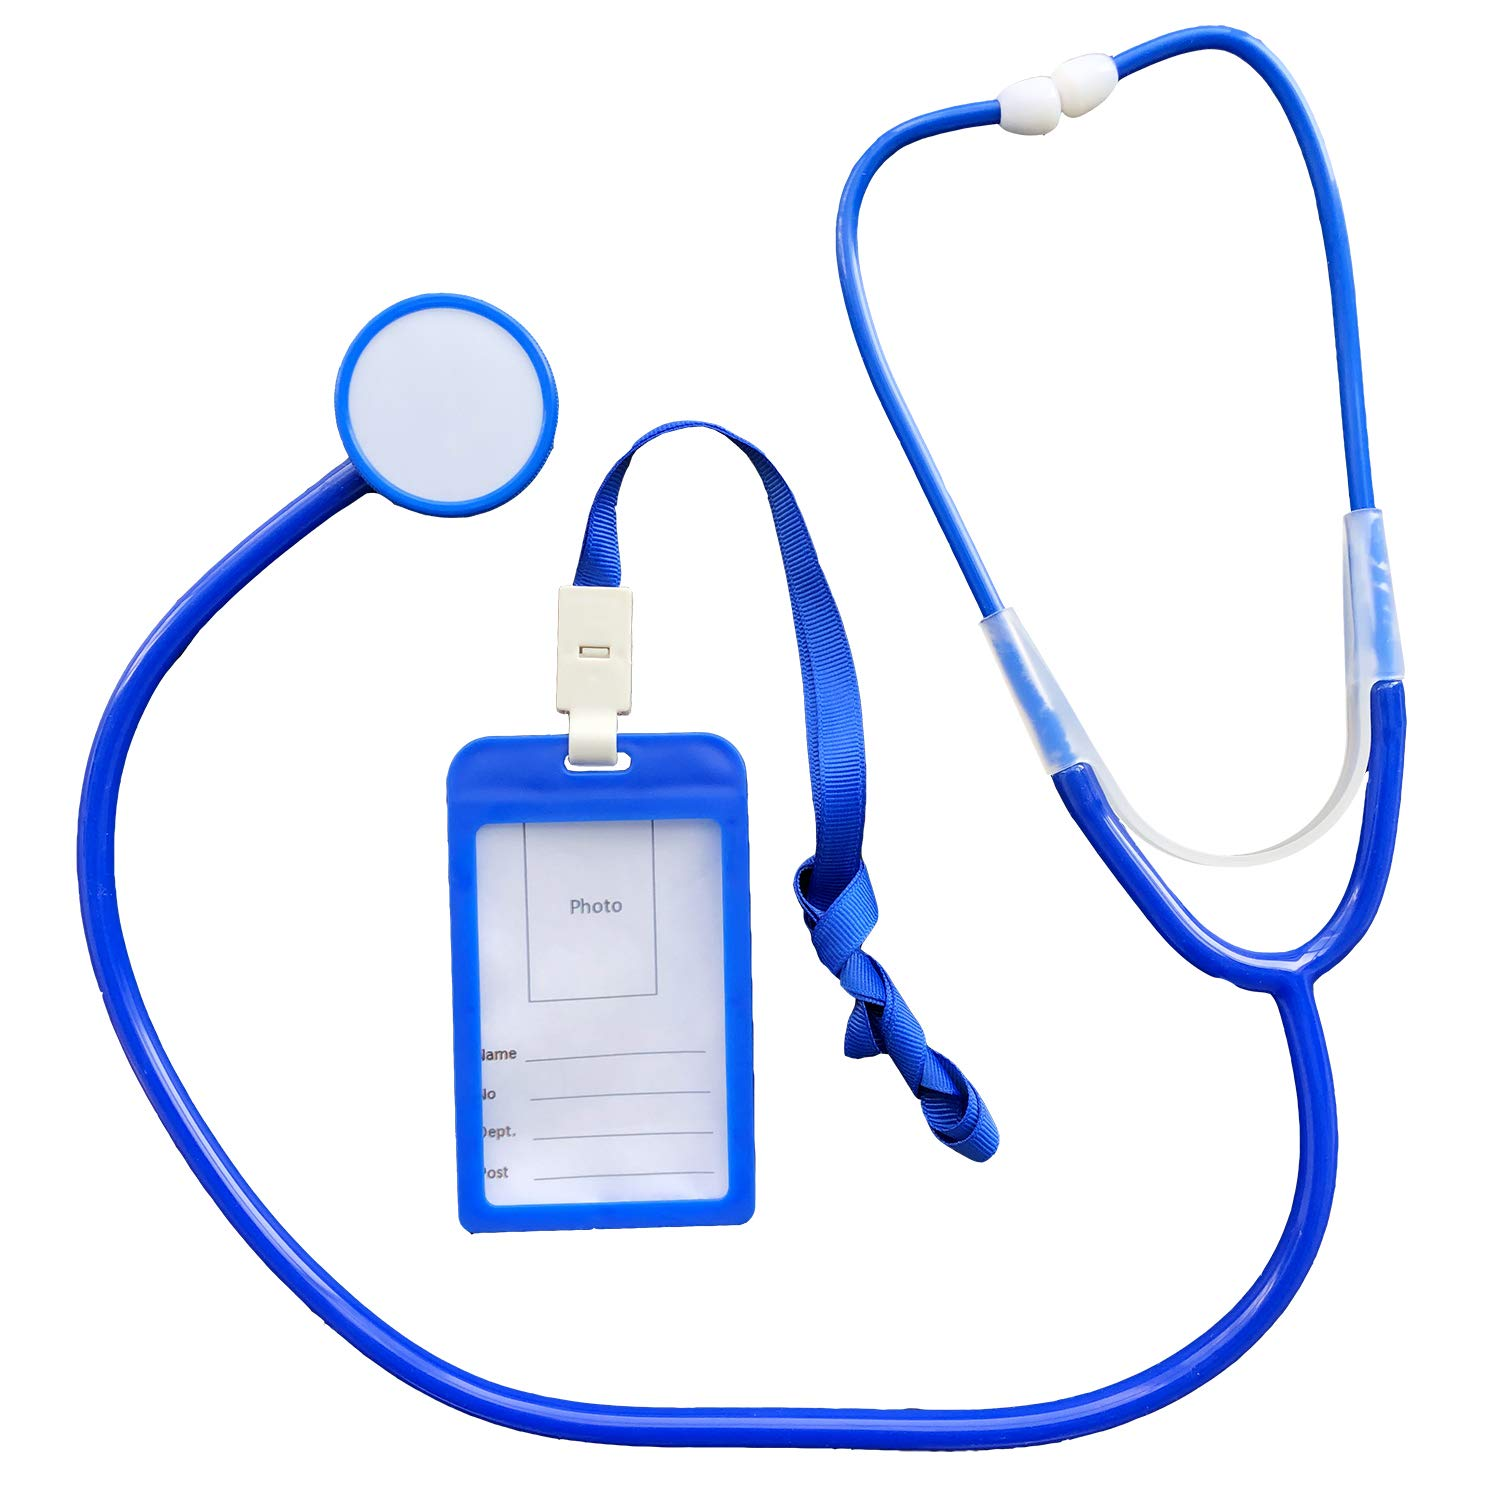 Doctor Play Set Medical Pretend Play Kit with Stethoscope, Doctor Costume, ID Cards, Name Tag for Learning & Educational Fun